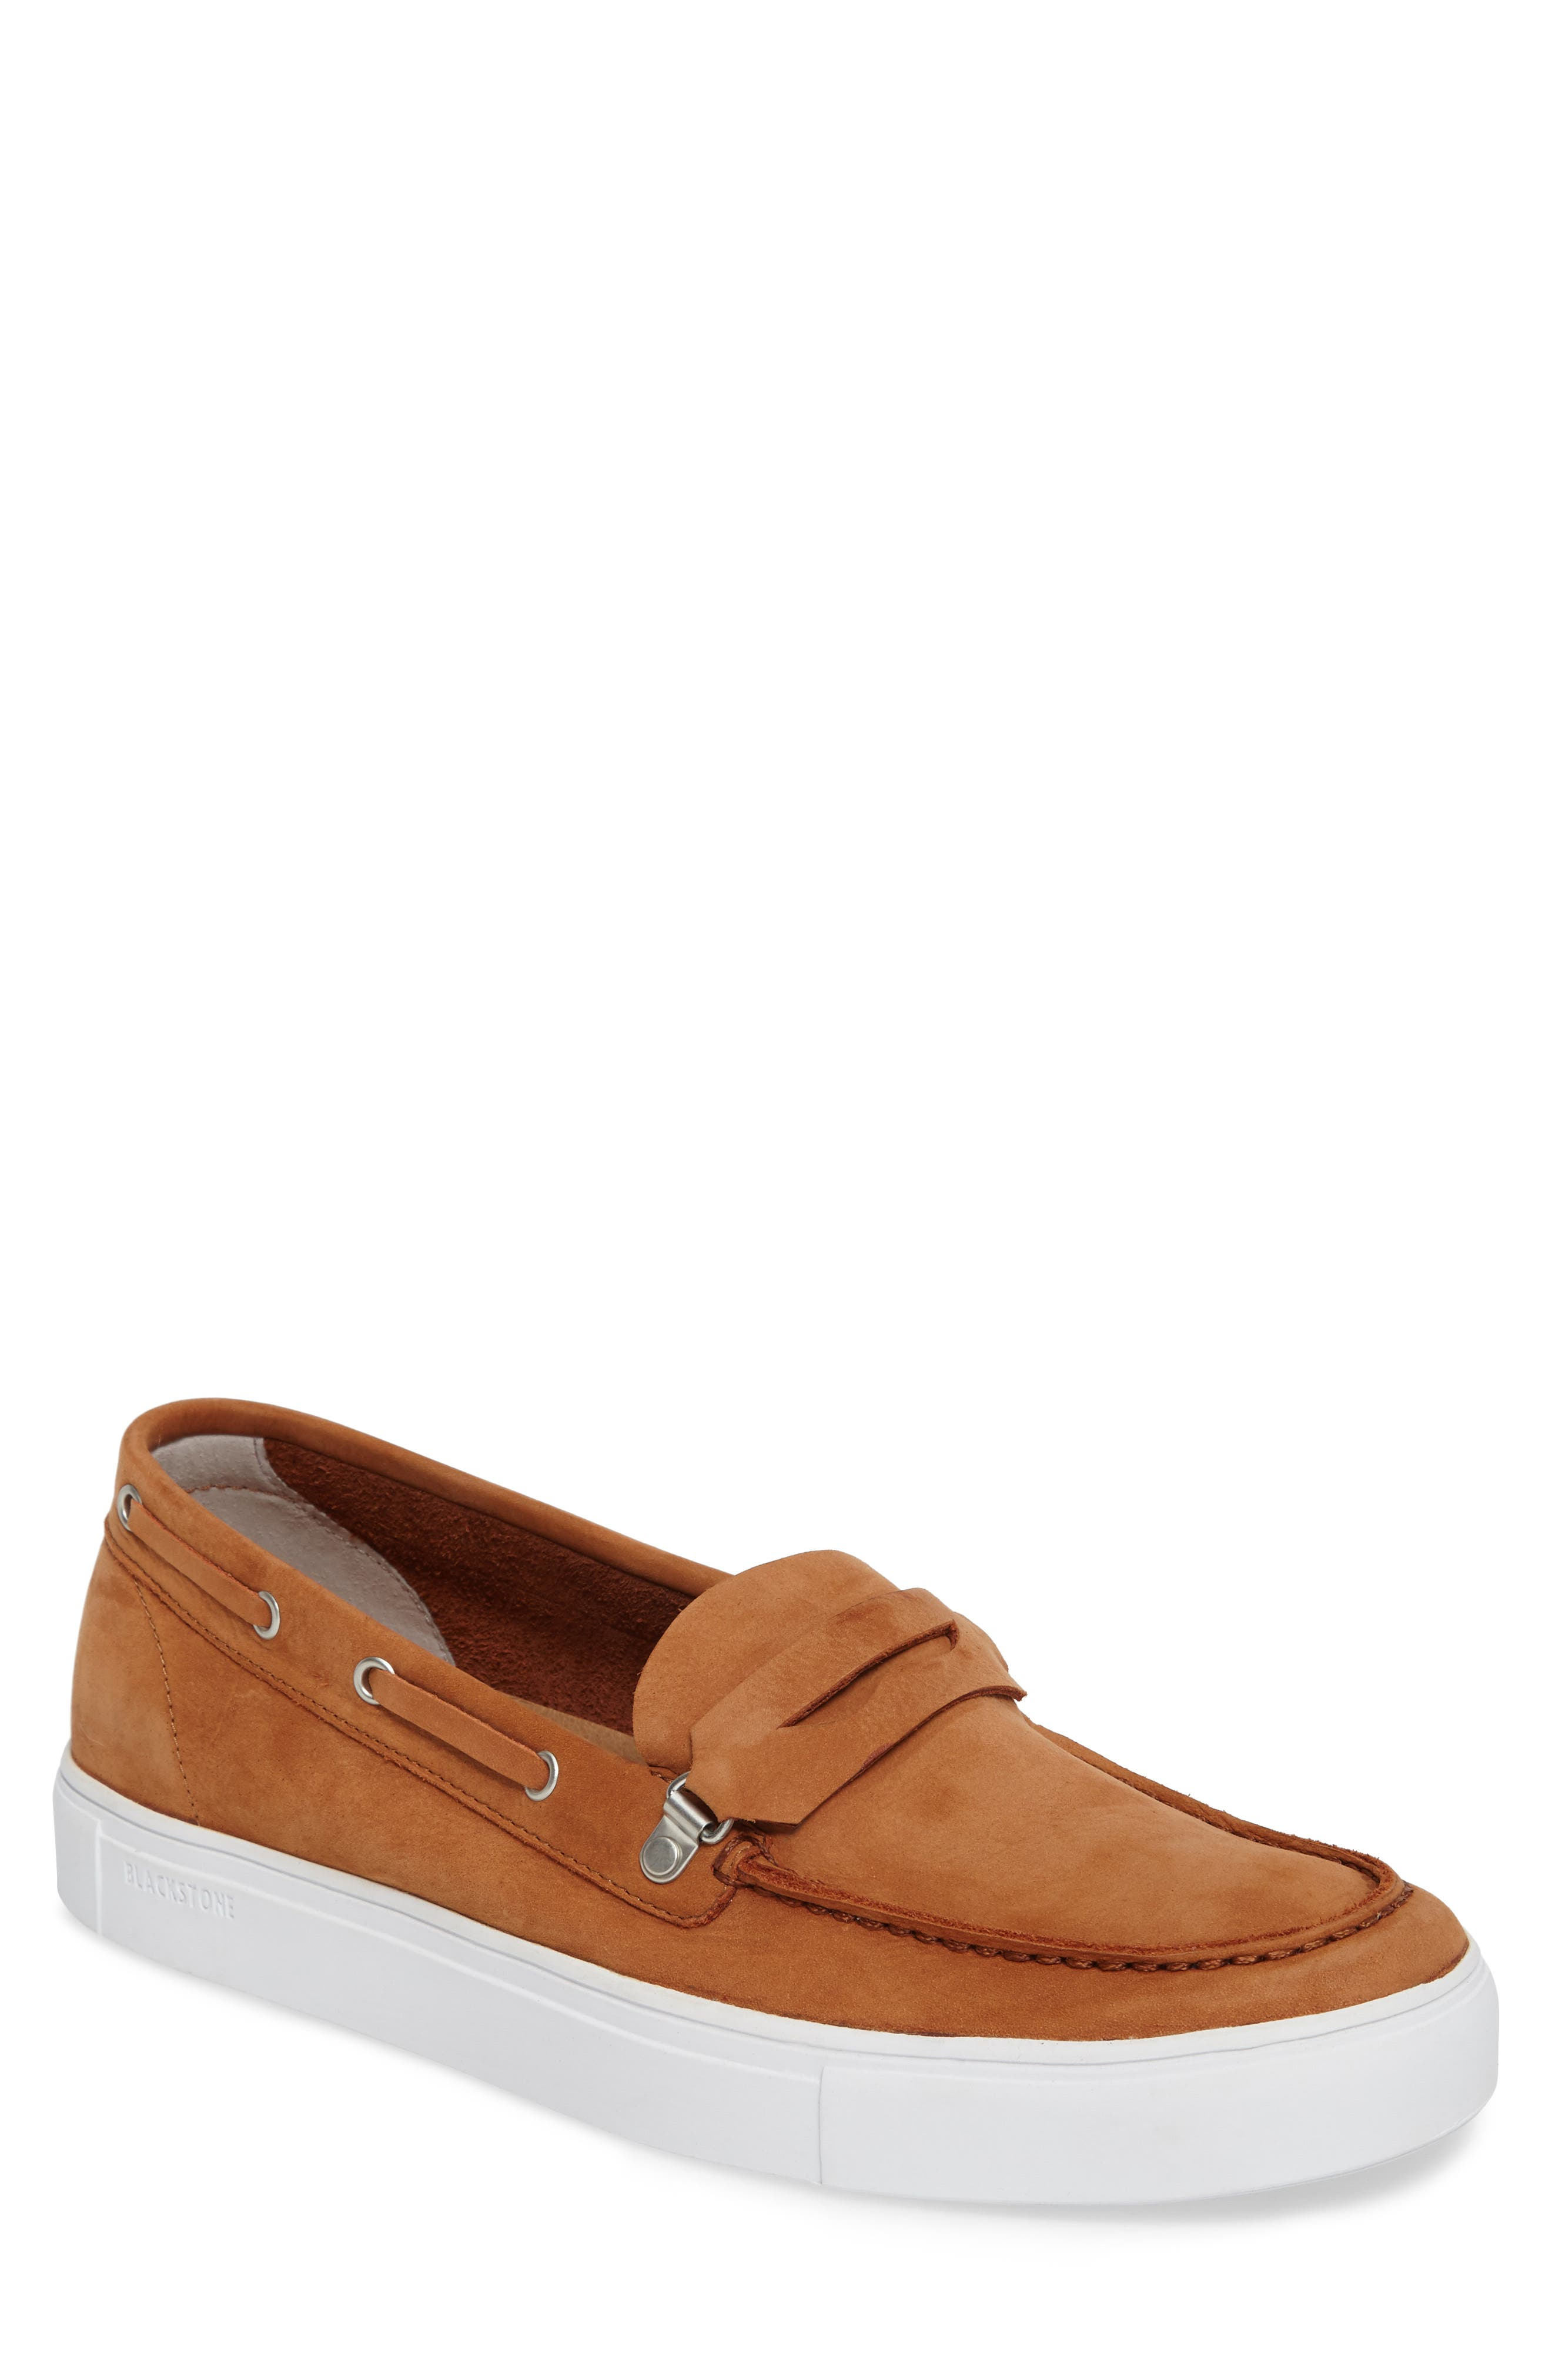 Main Image - Blackstone NM15 Loafer Sneaker (Men)